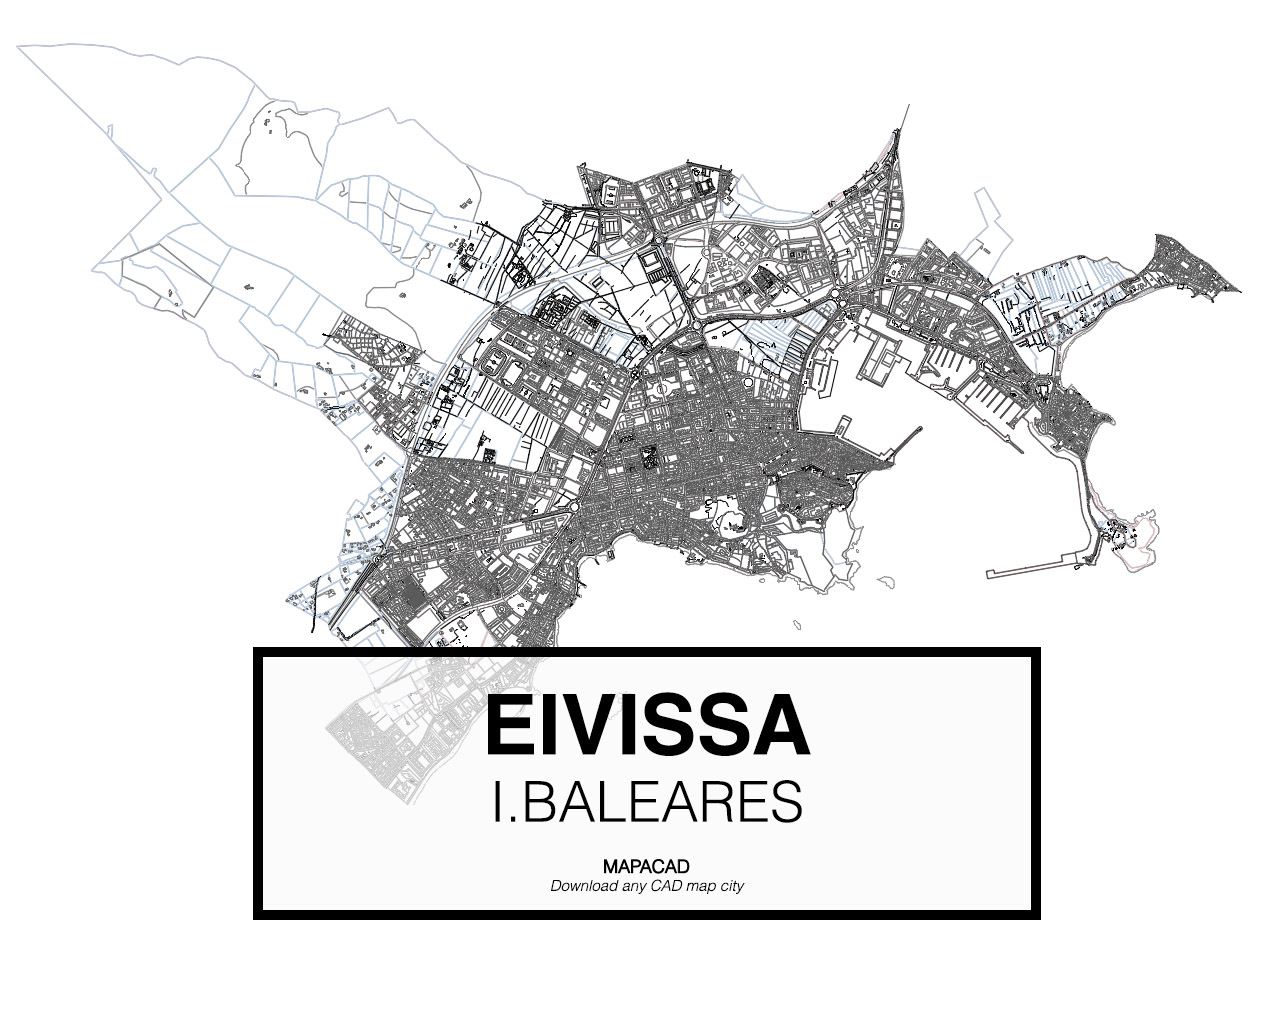 Eivissa dwg mapacad eivissa baleares 01 mapacad download map cad dwg gumiabroncs Gallery